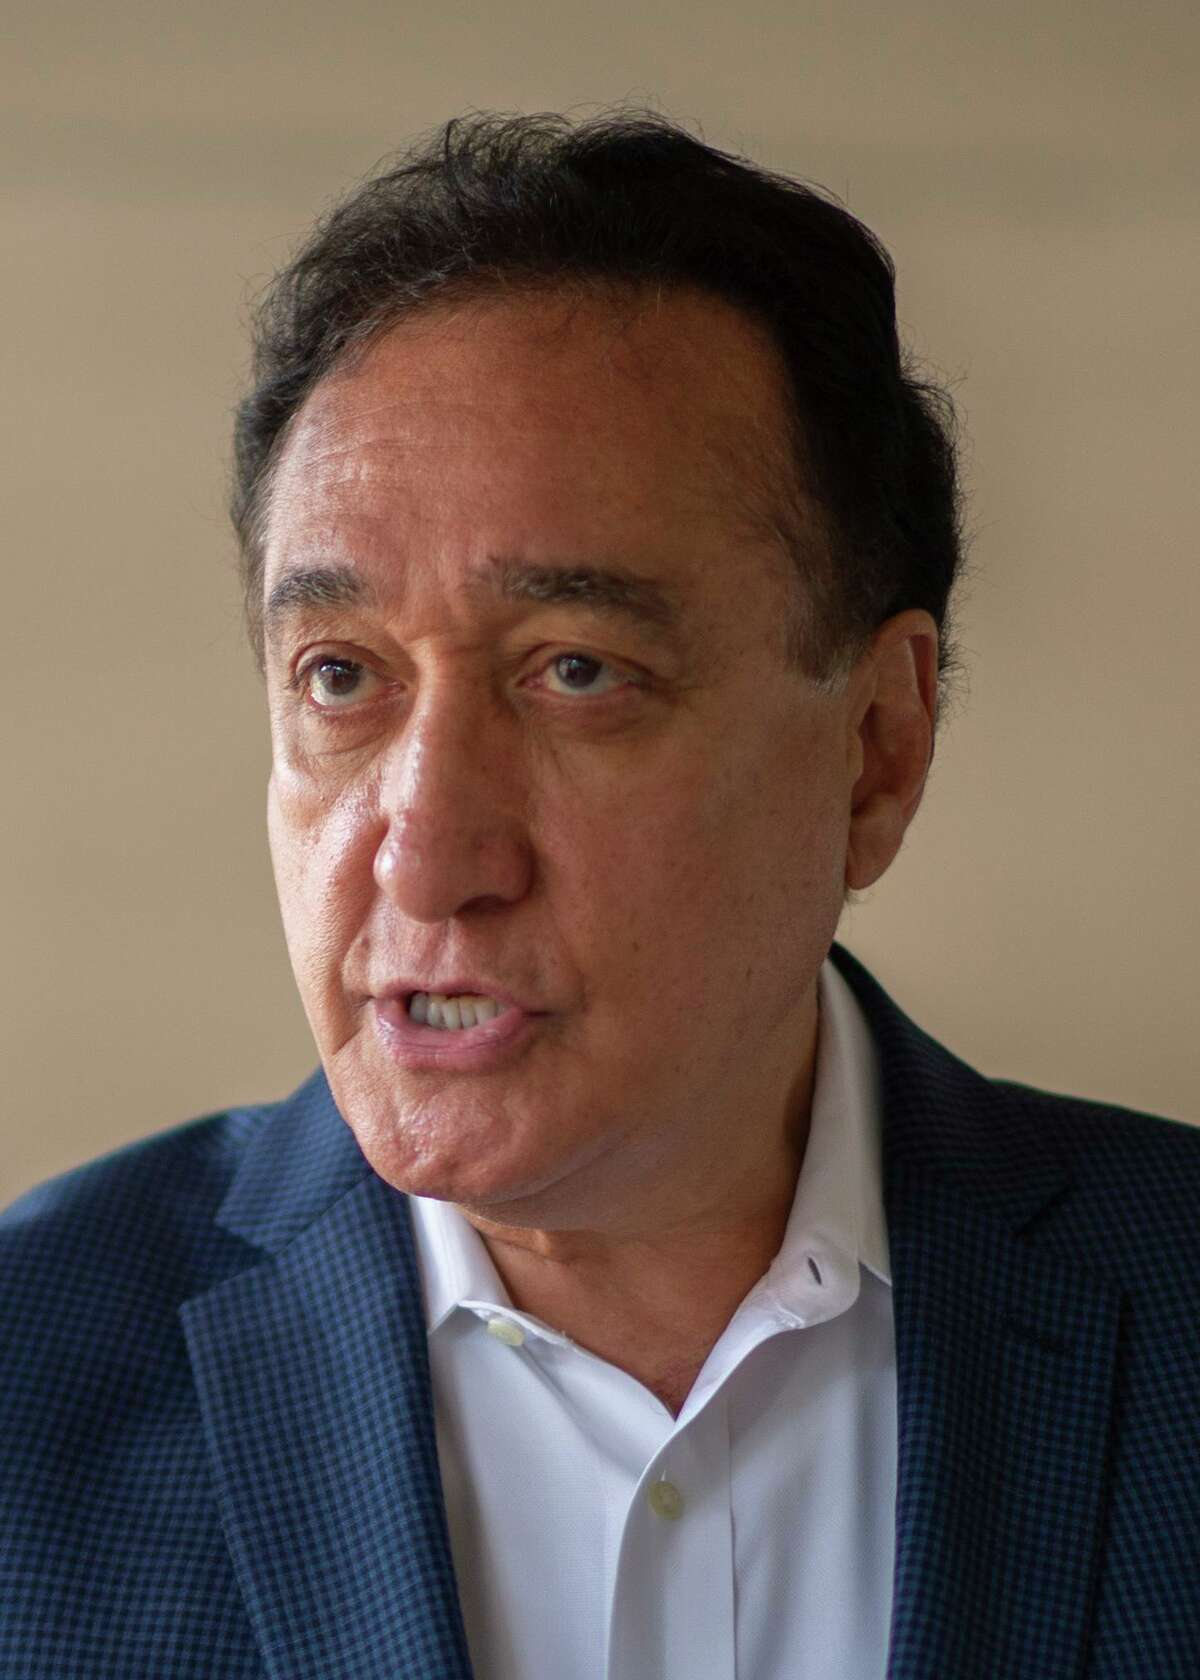 Henry Cisneros, 72, former San Antonio mayor, was injured while paragliding in Switzerland last week and underwent surgery for a torn hamstring.